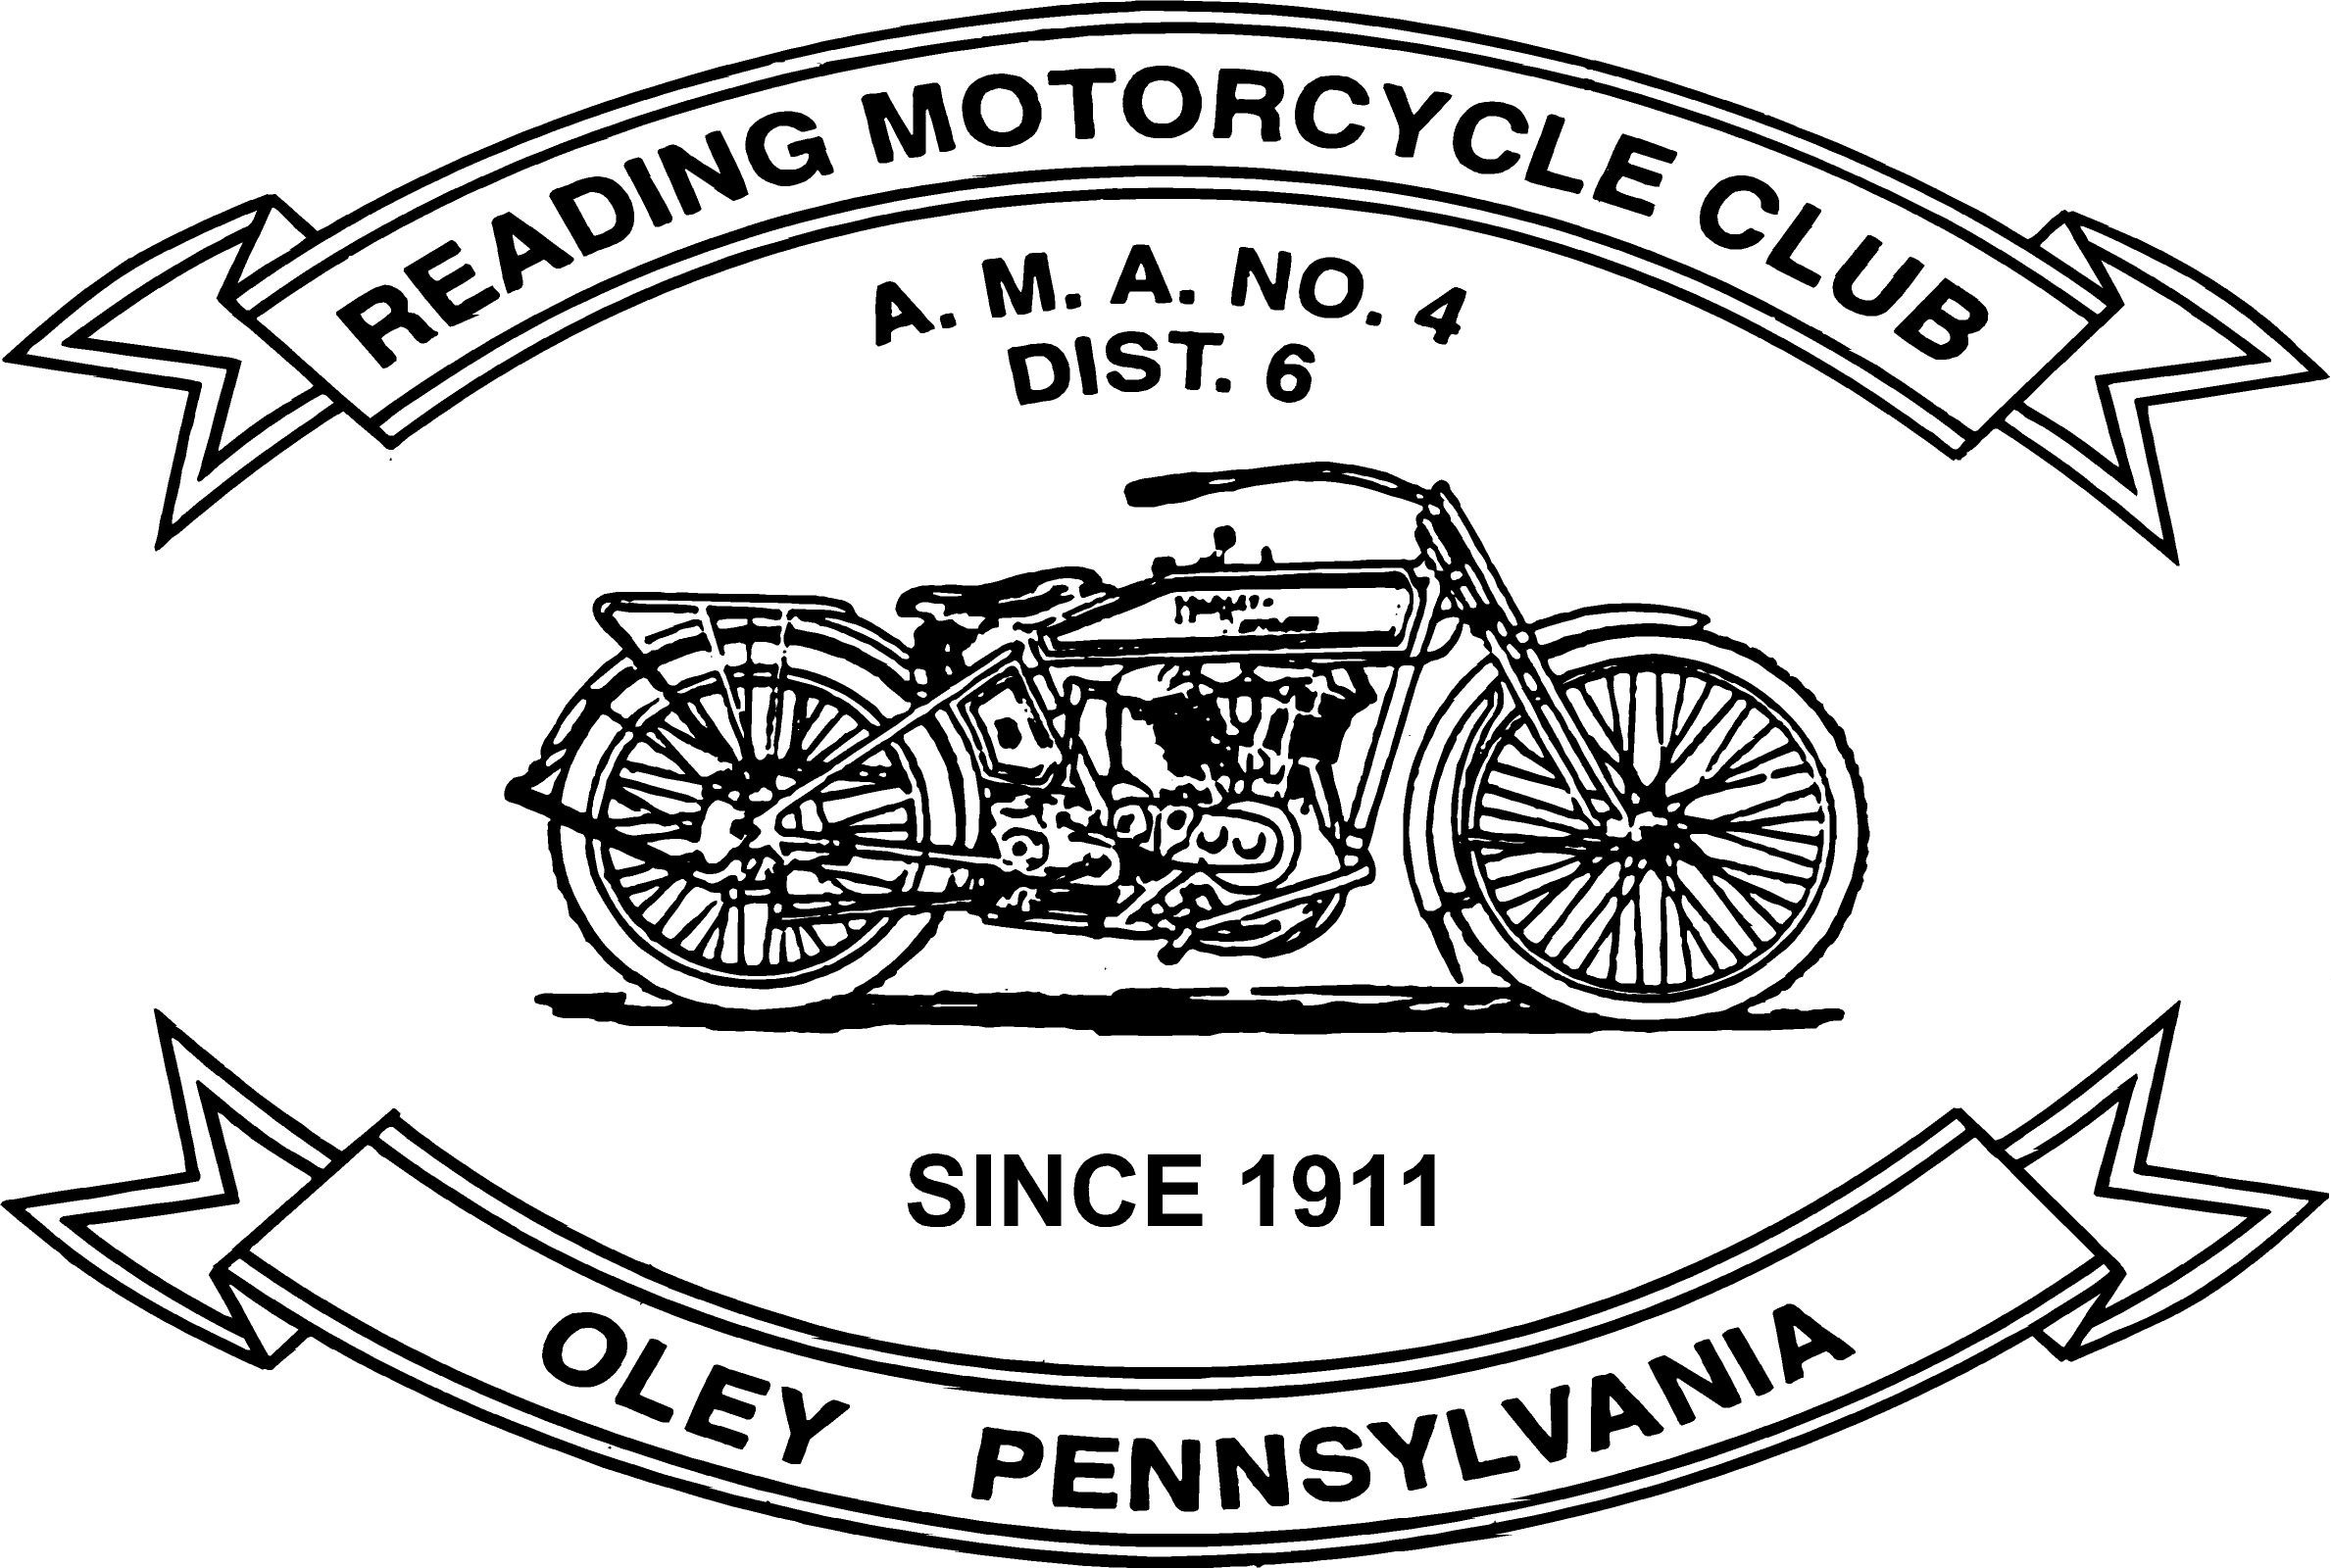 Reading Motorcycle Club